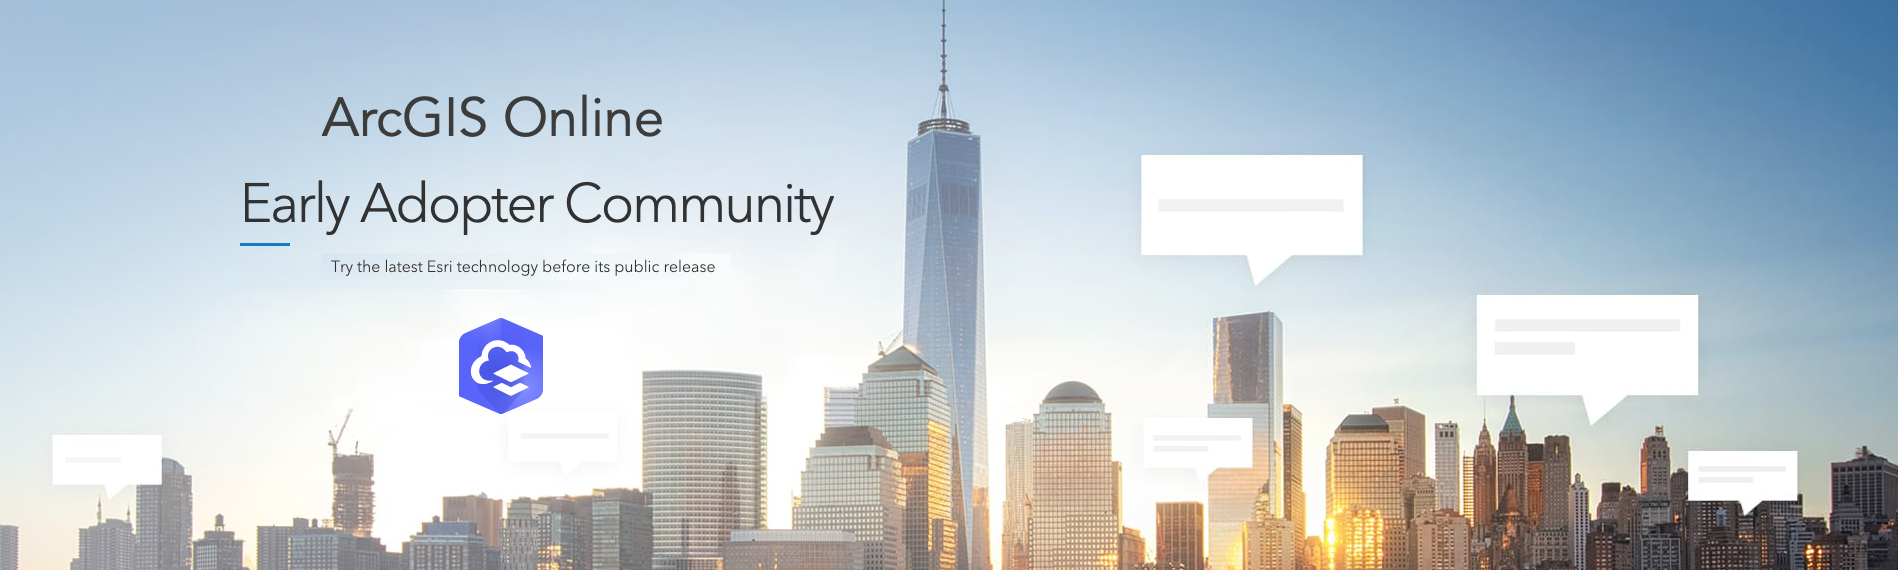 ArcGIS Online Early Adopter Community